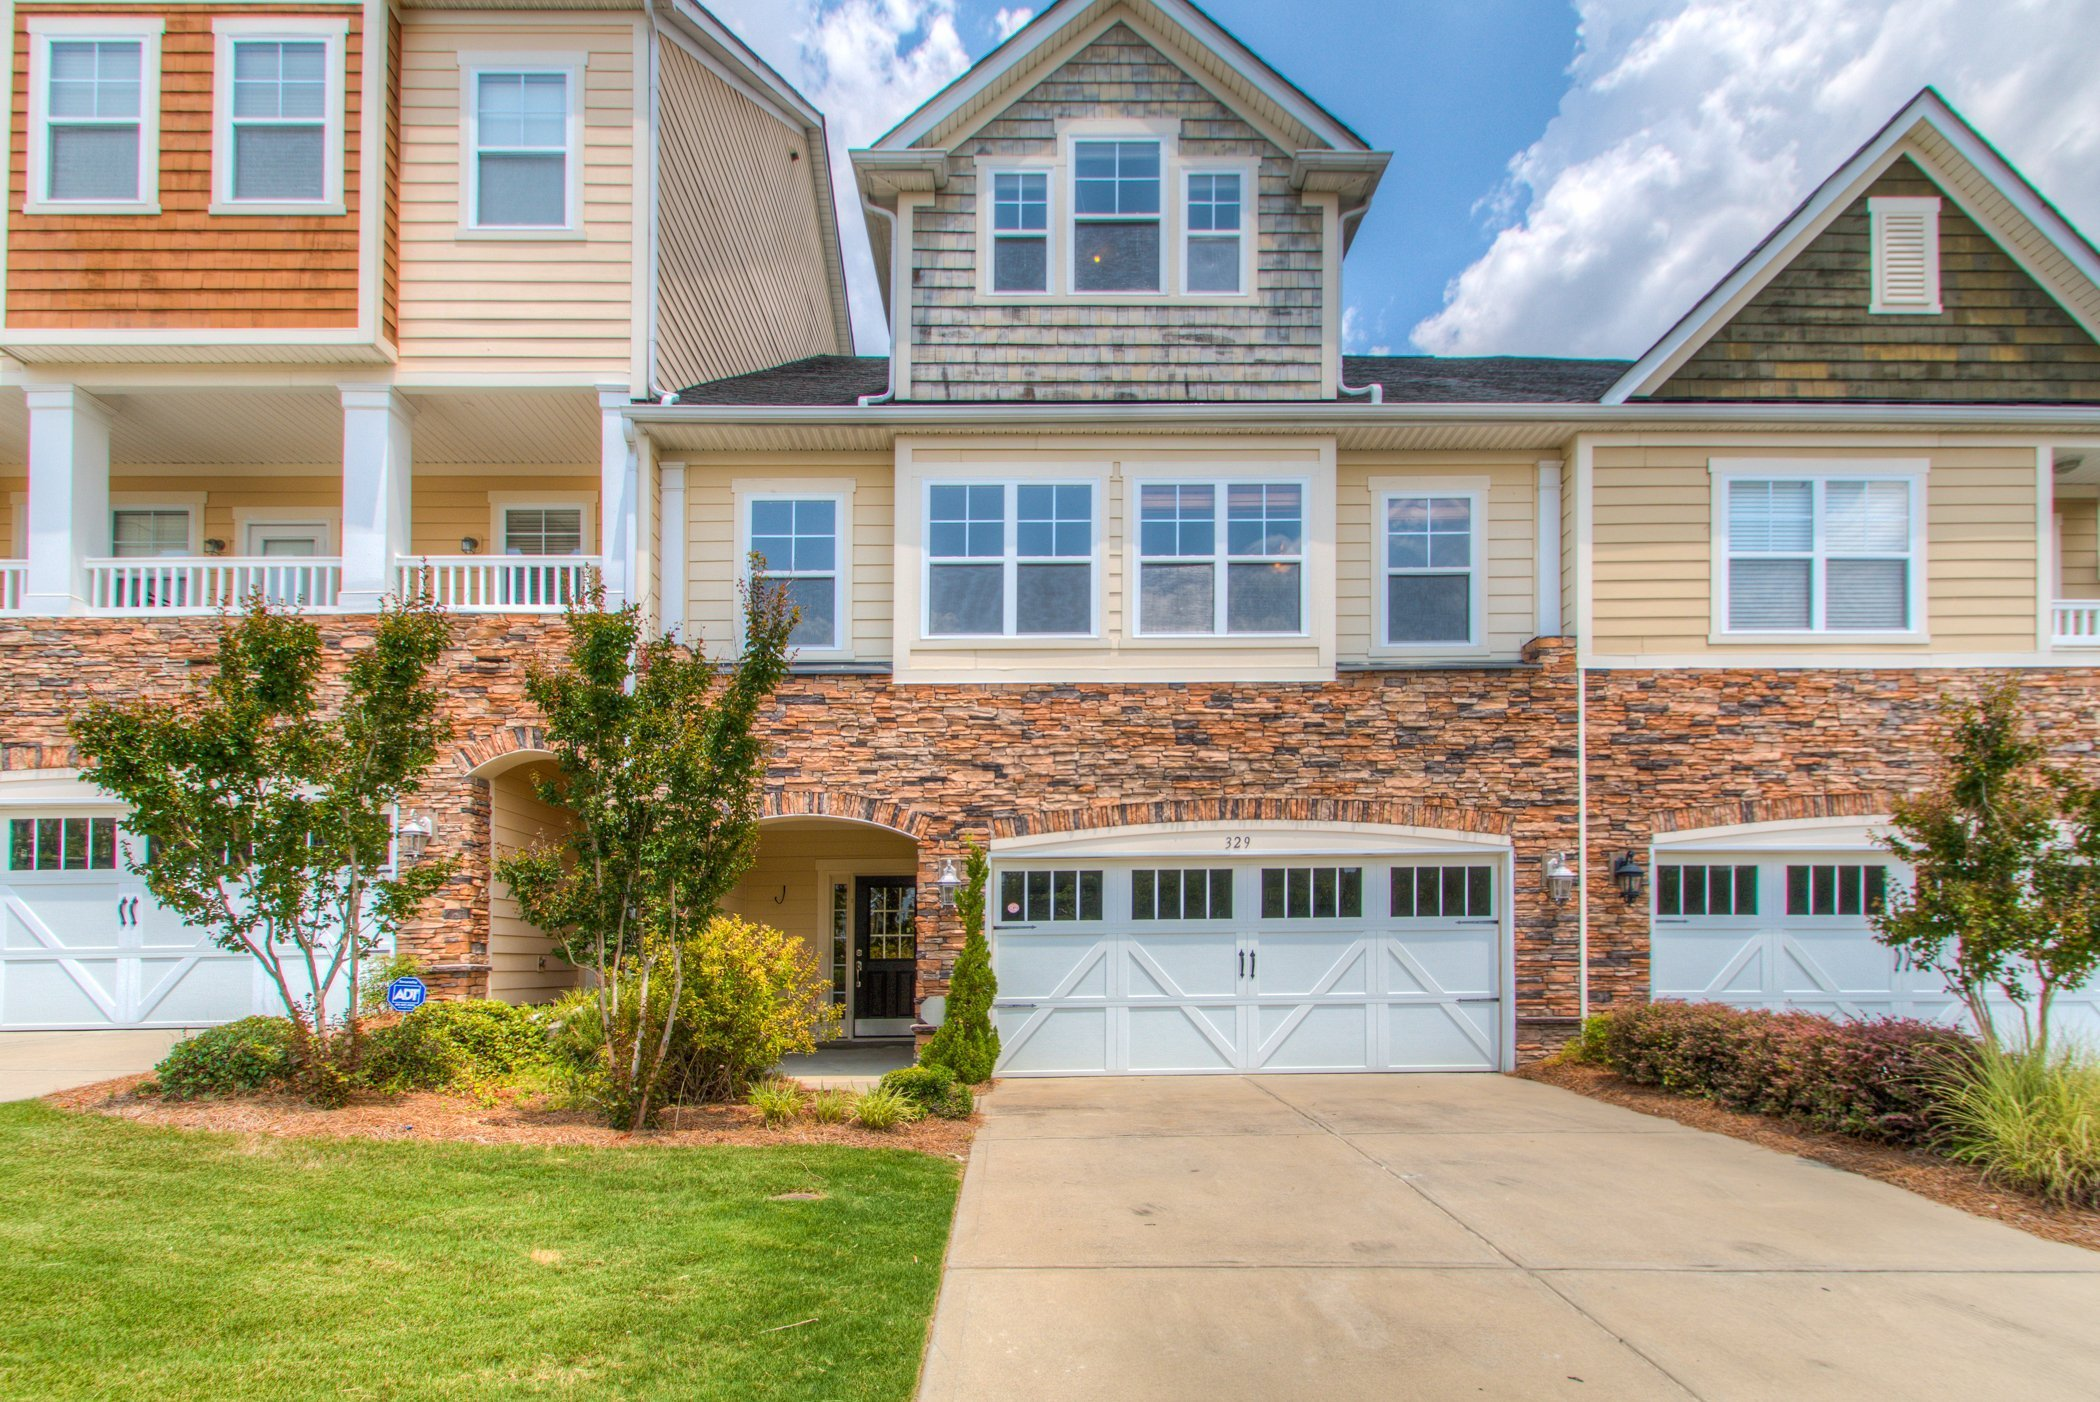 329 Wave Crest Tega Cay Sc 29708 Homes Fort Mill And